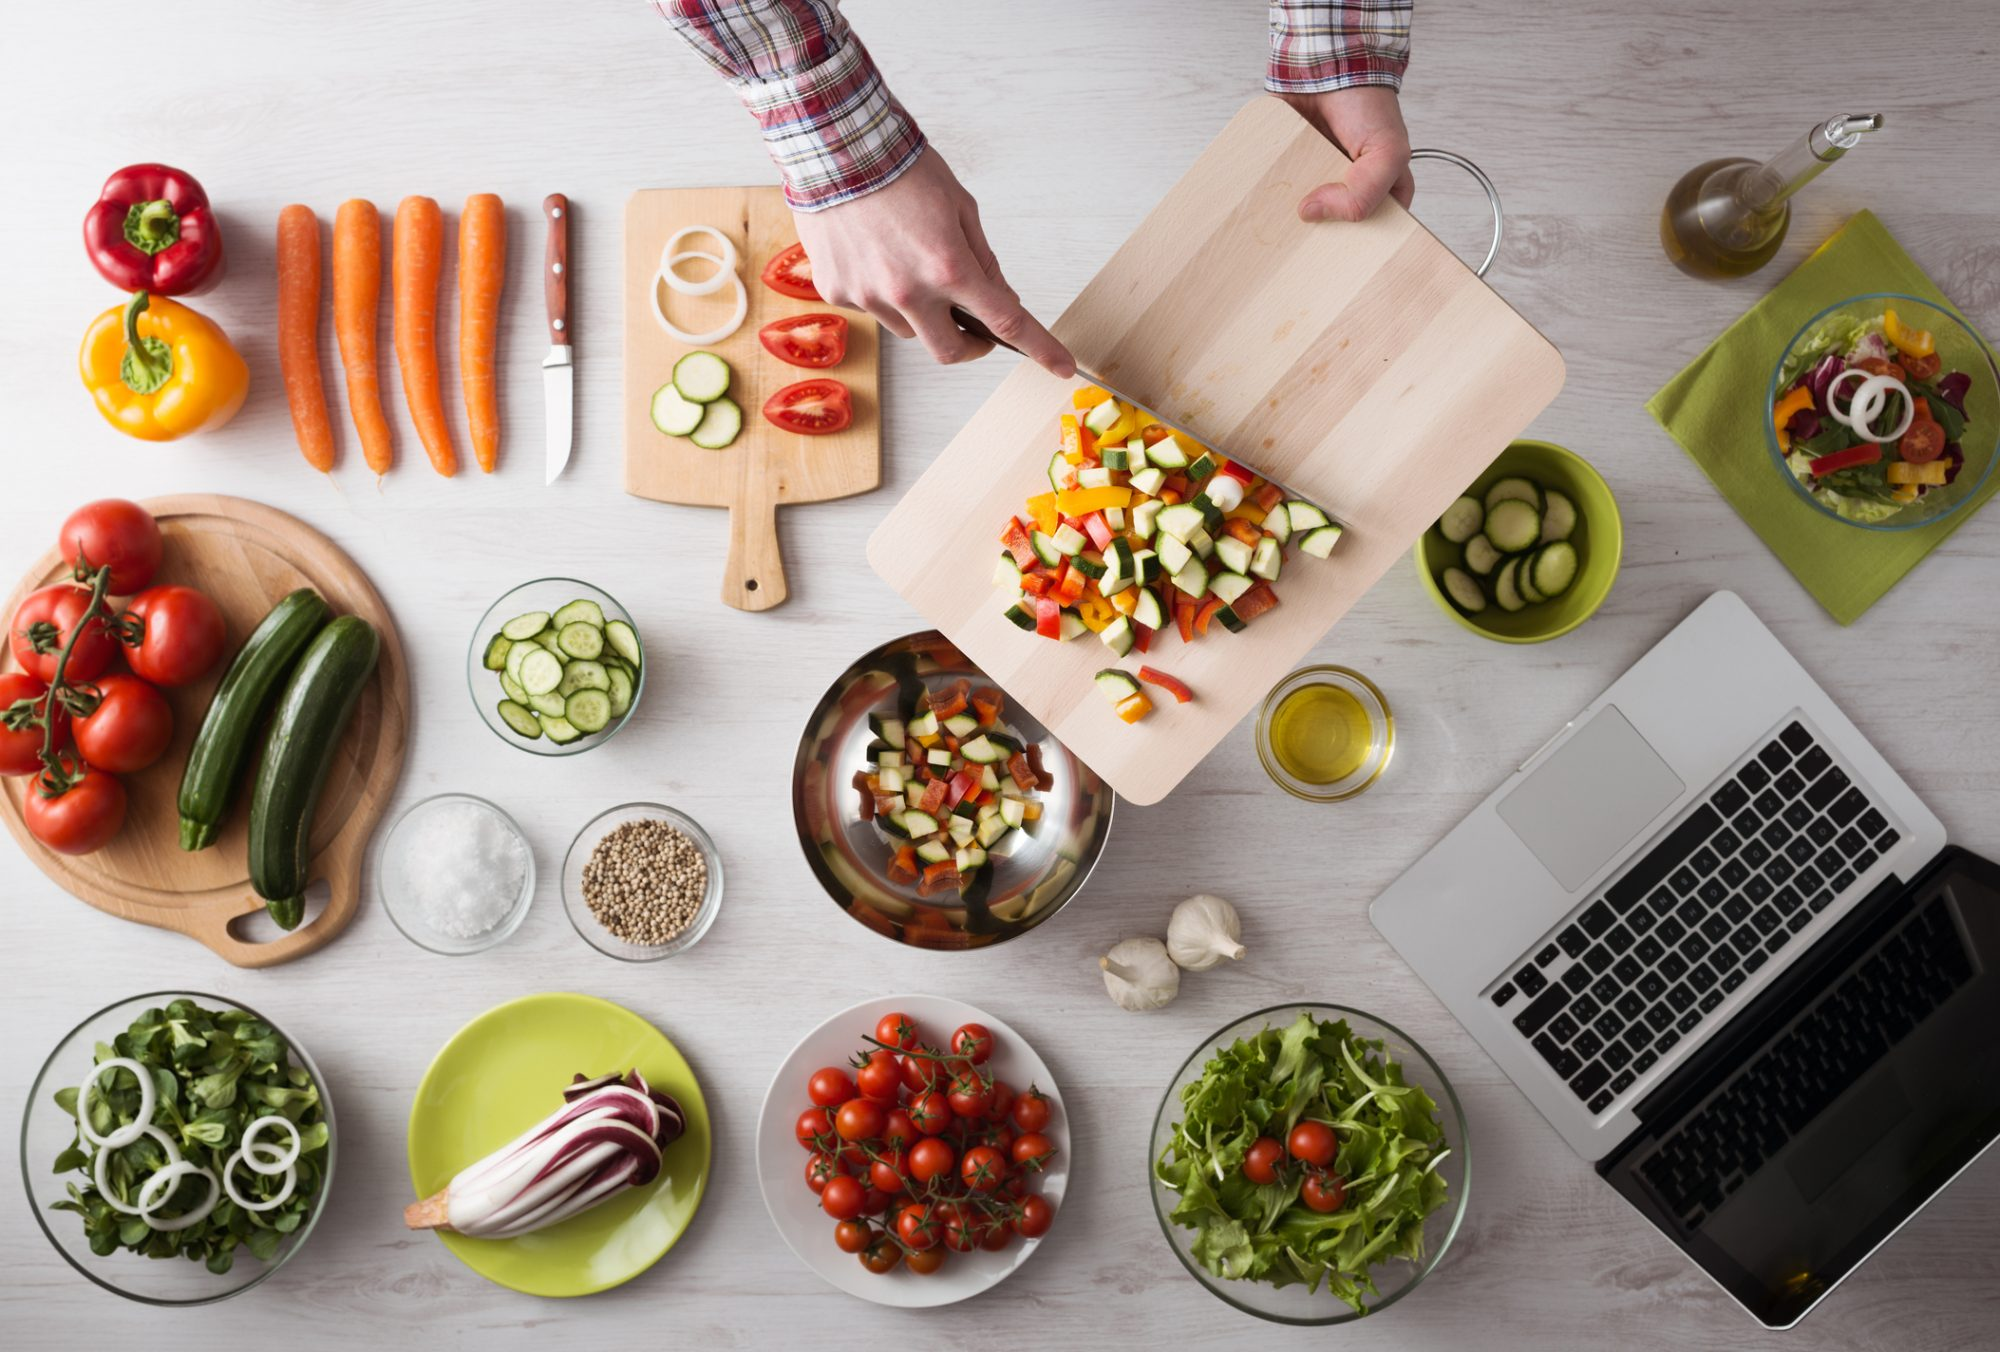 Man's hands cooking at home and chopping fresh vegetables on a cutting board, kitchen tools and food ingredients all around, top view